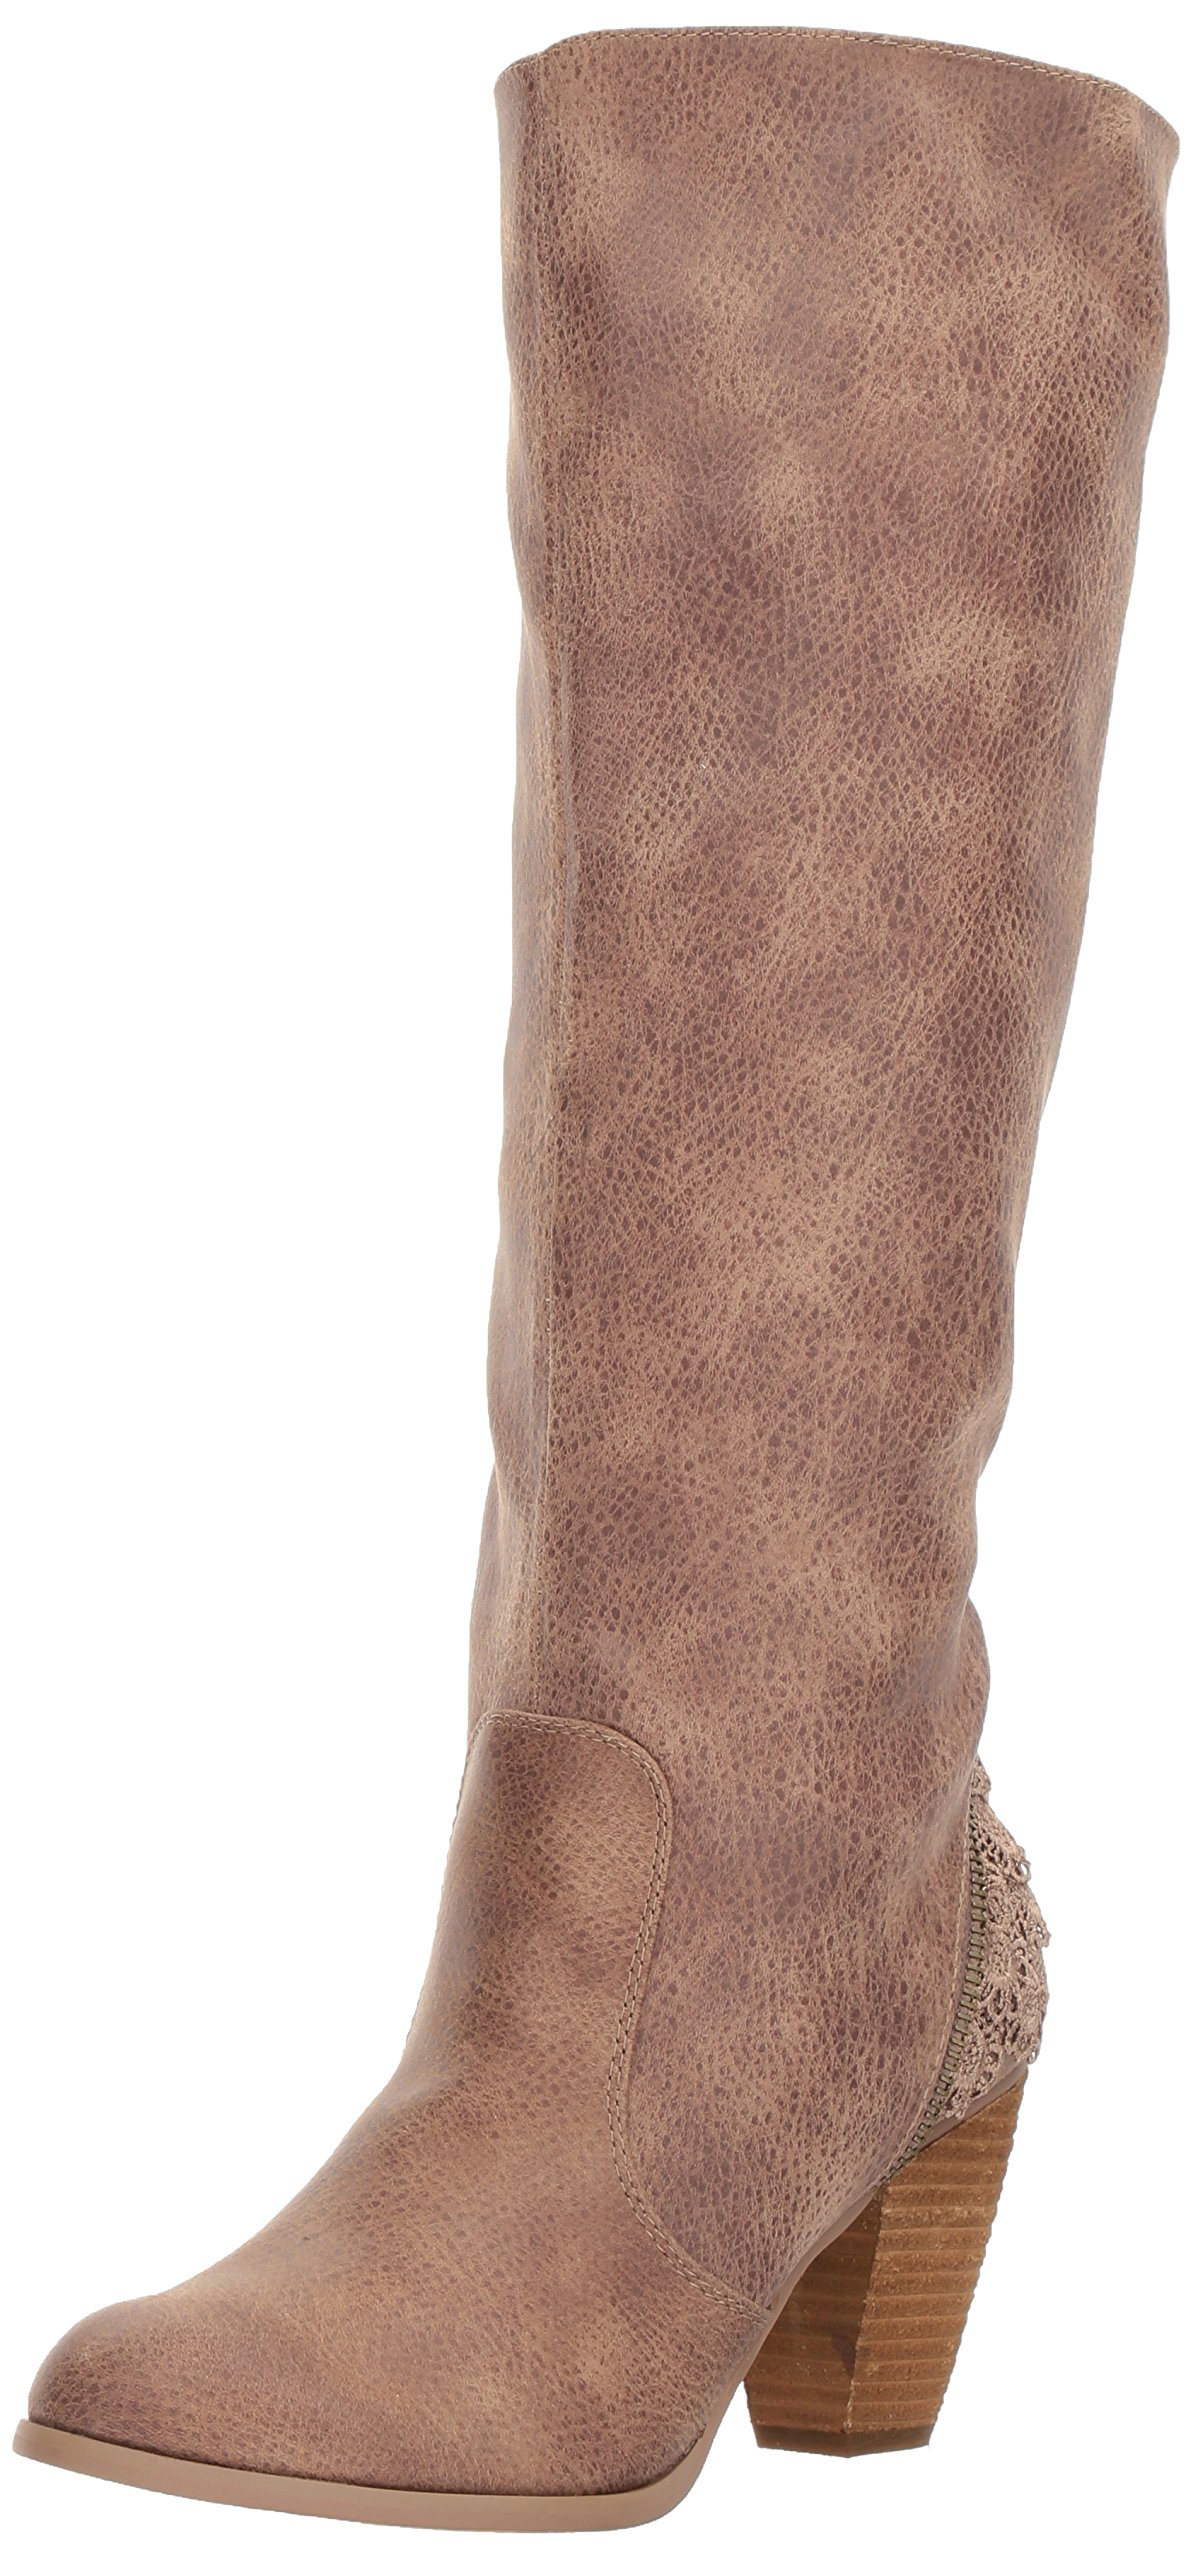 Not Rated Women's Sass It up Riding Boot, Taupe, 9.5 M US